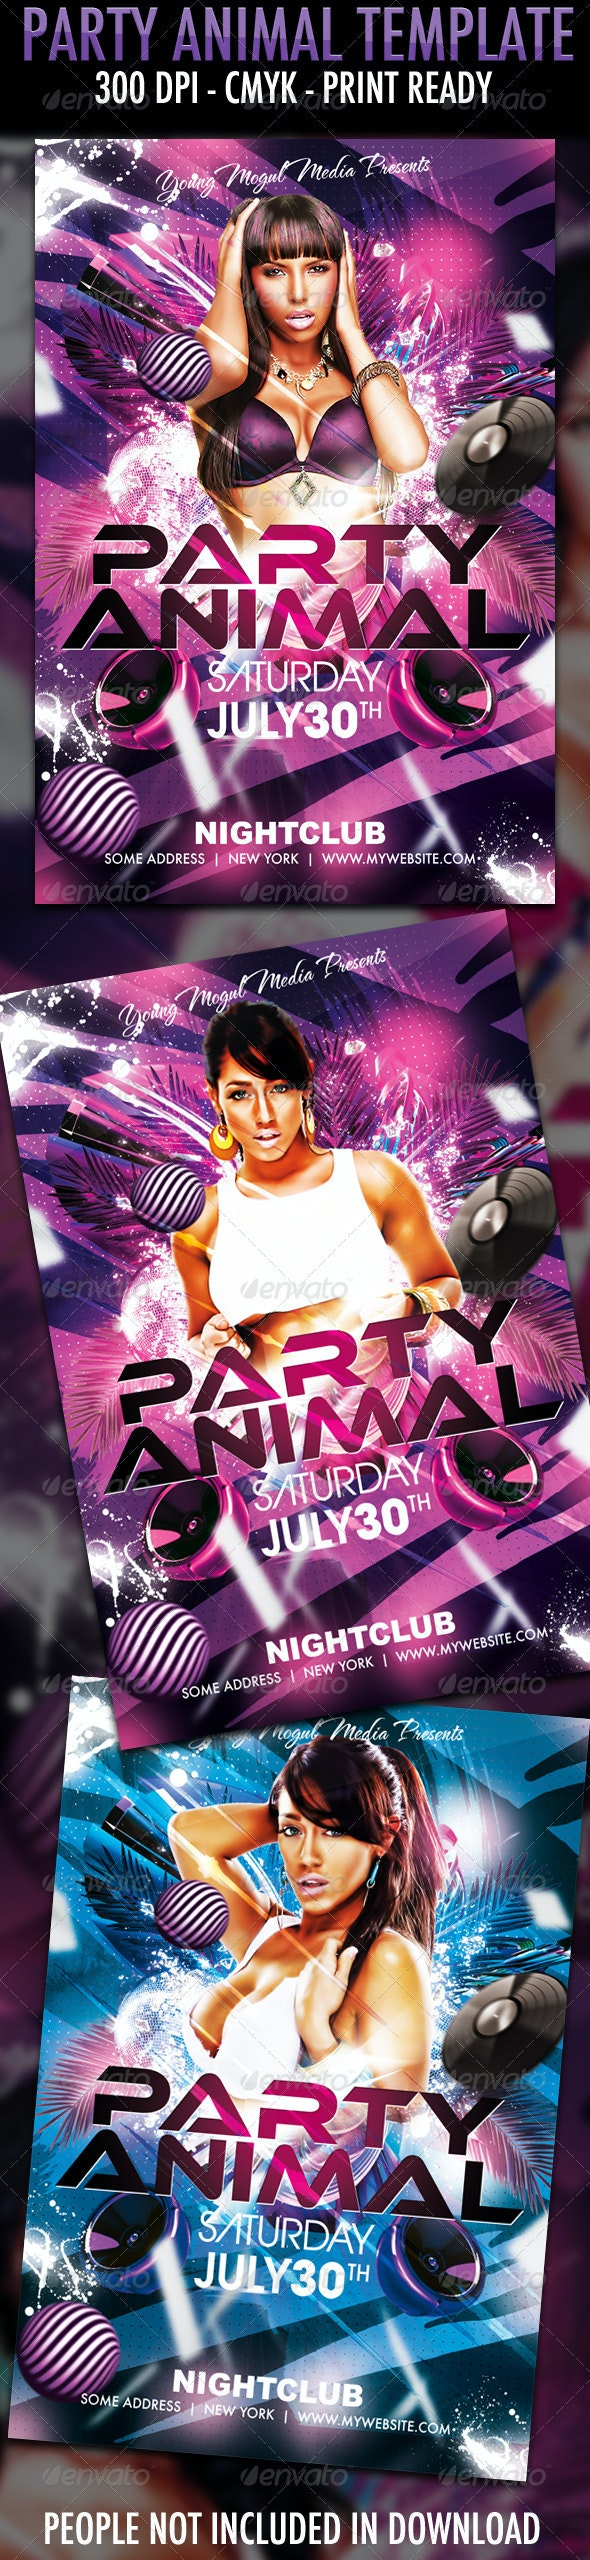 Party Animal Flyer Template - Clubs & Parties Events